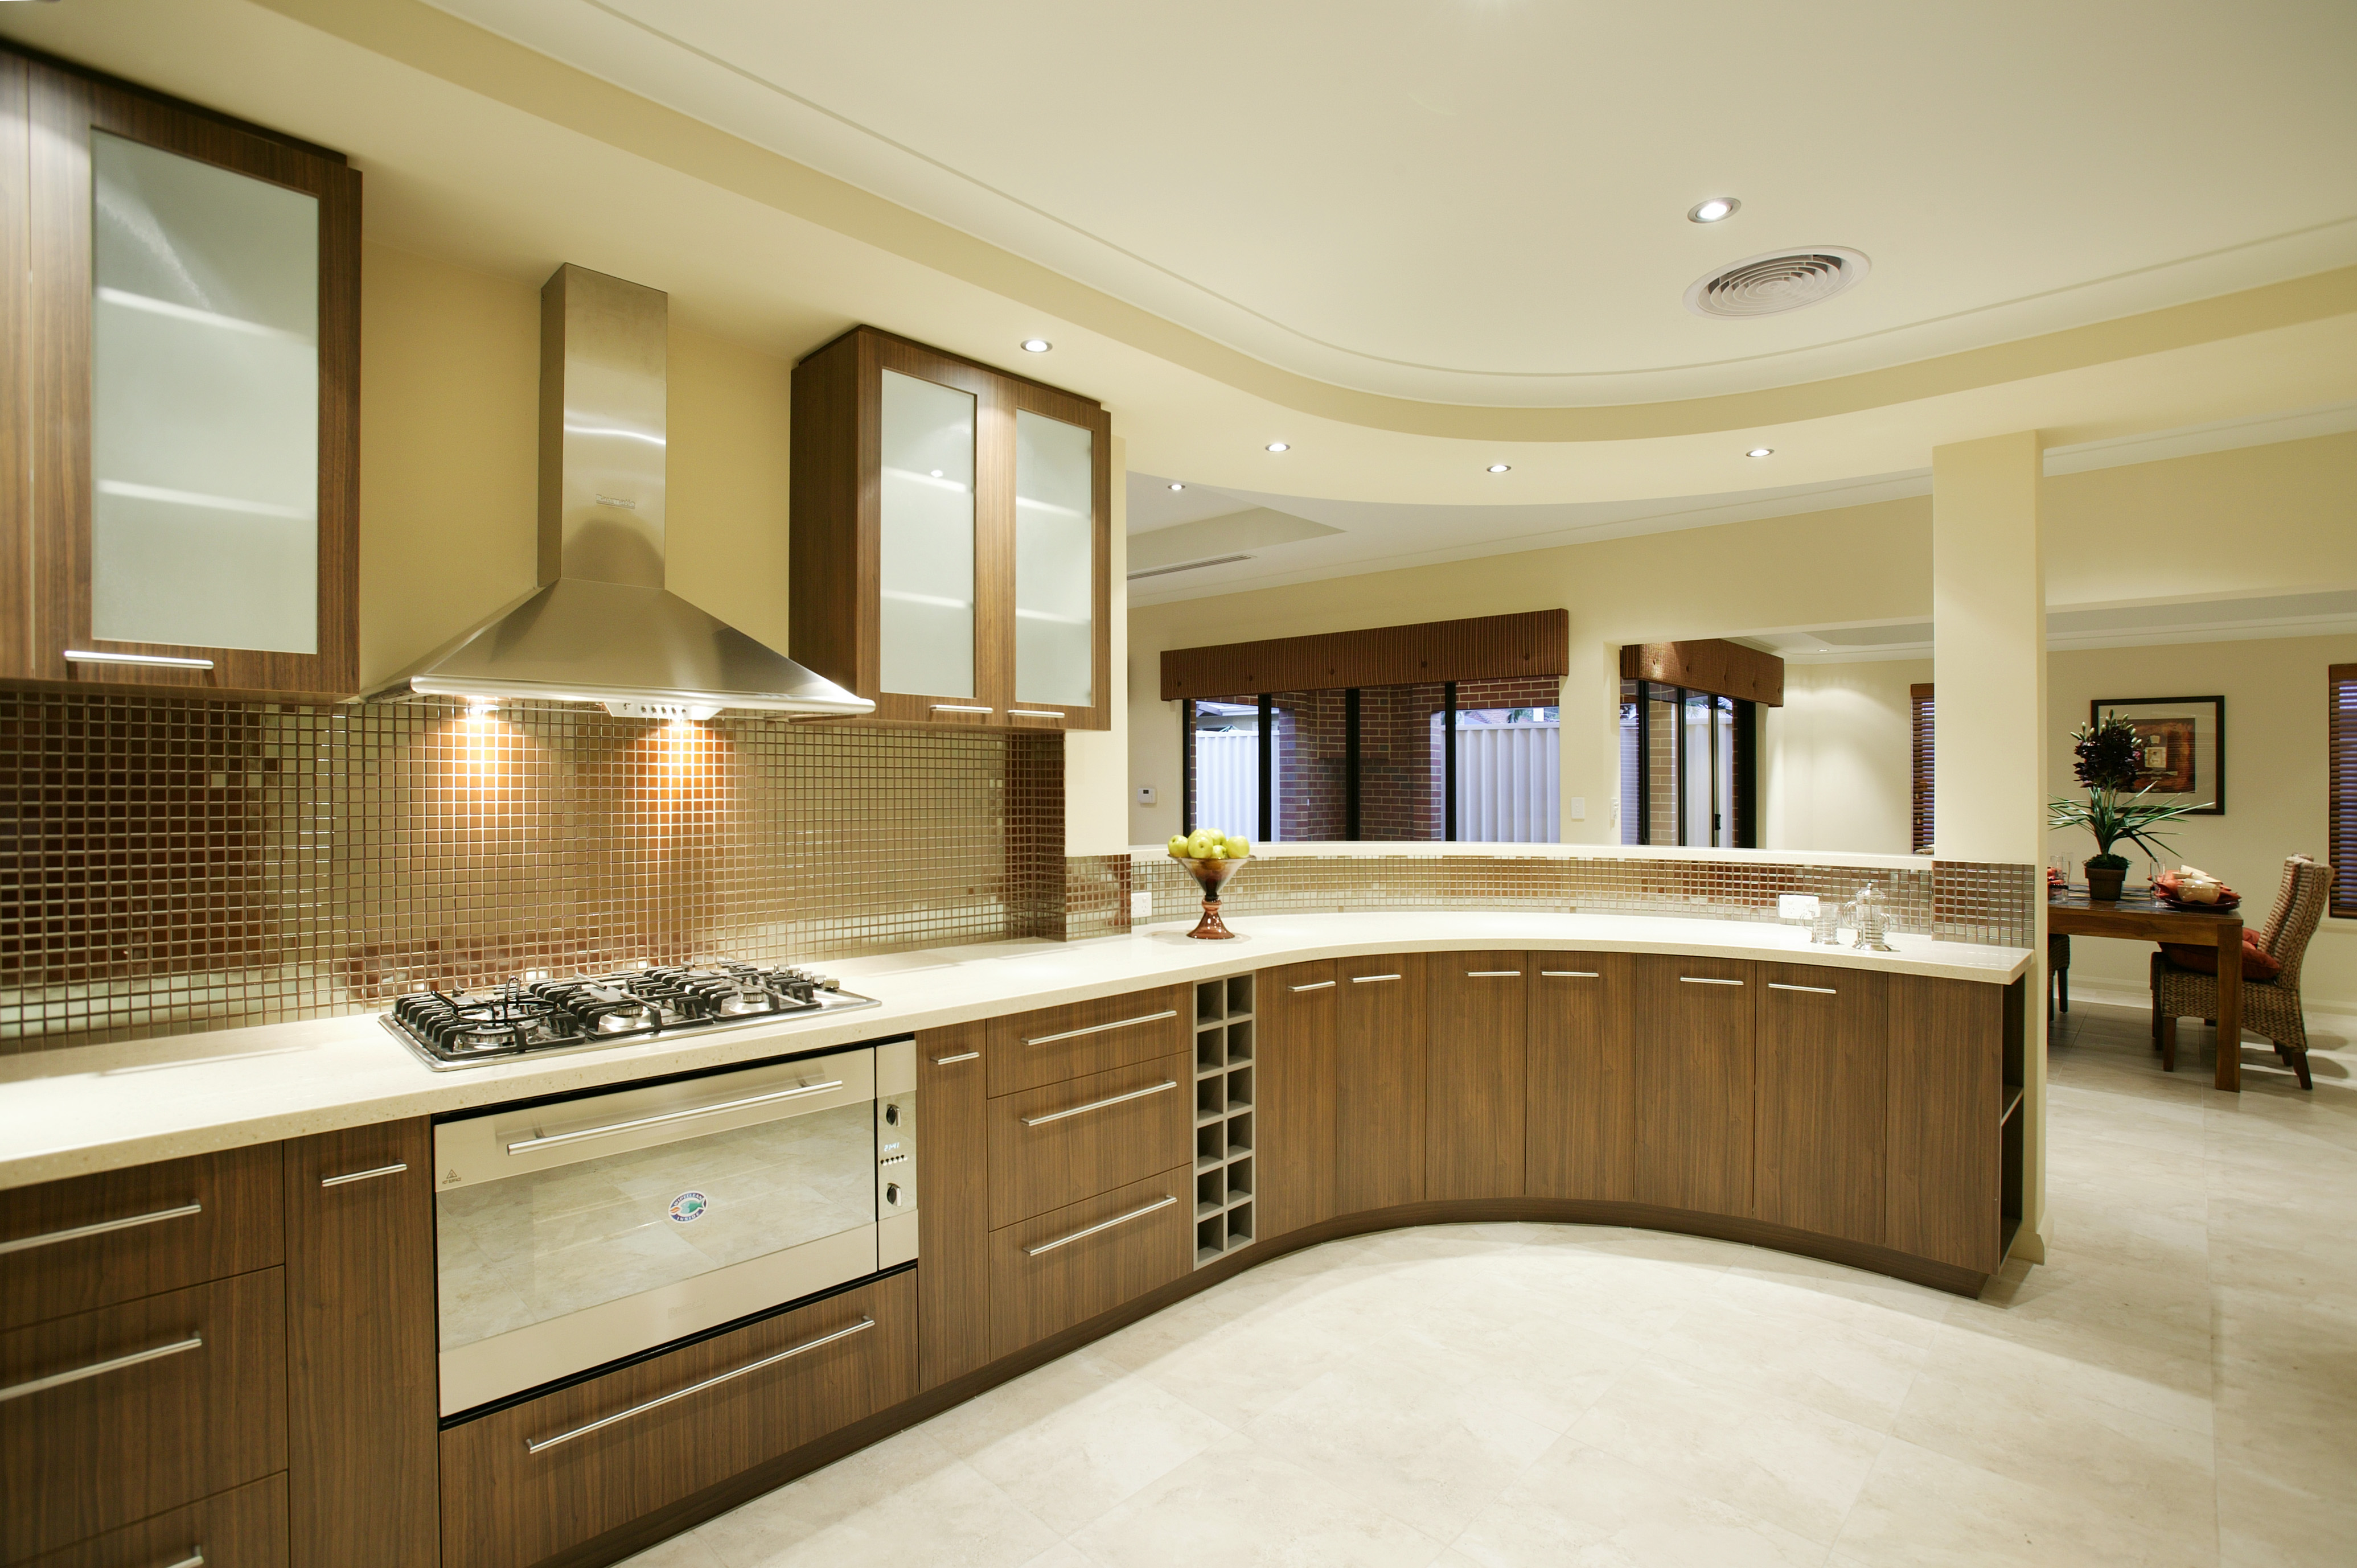 Interior Design | Room Interior Design | Kitchen Interior design ...